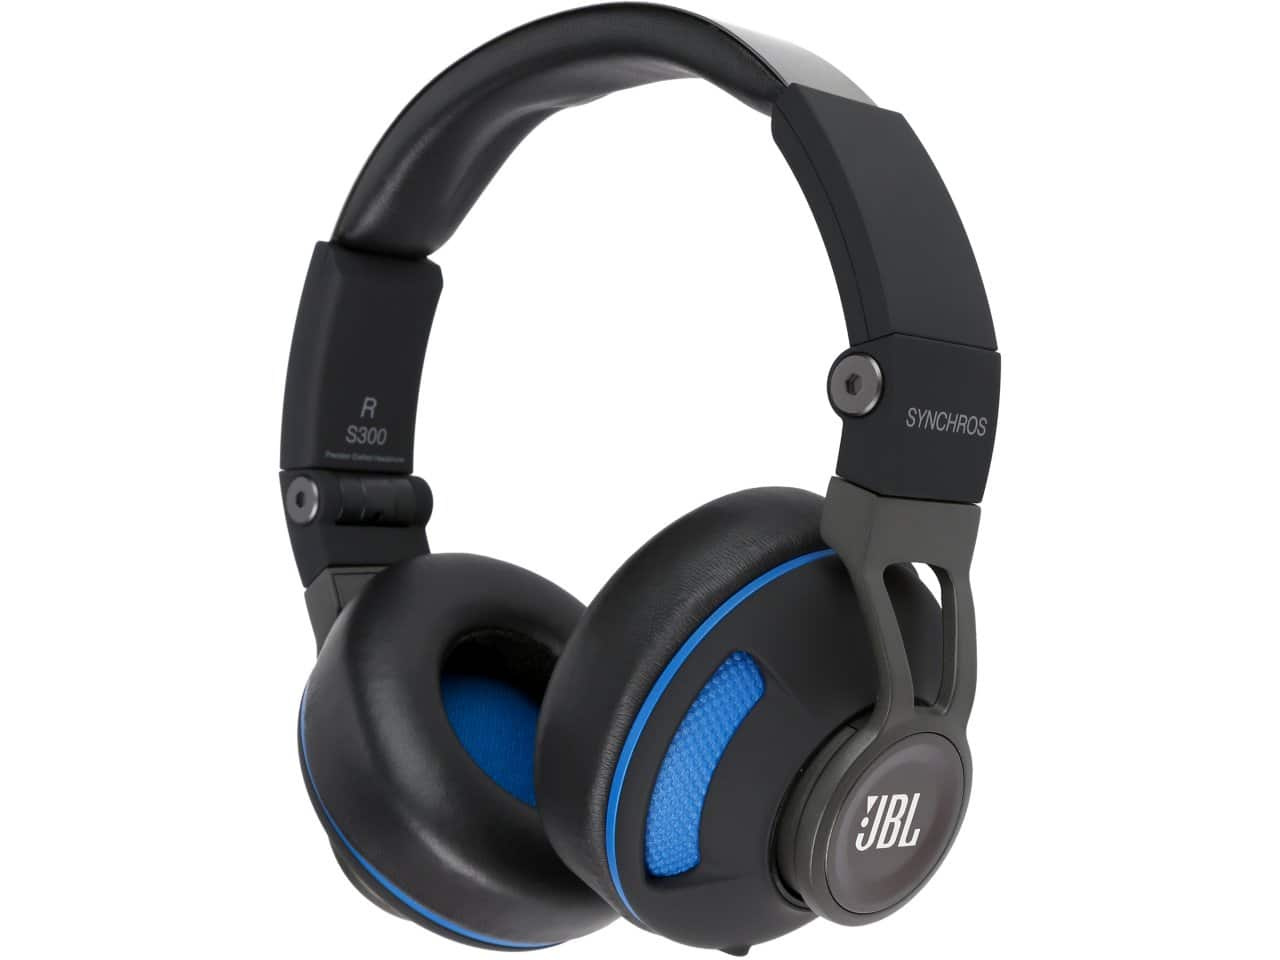 JBL Synchros S300 On-Ear Black & Blue Headphones with Built-In Android Remote + Microphone for $29.99 AR + Free Shipping @ Newegg.com